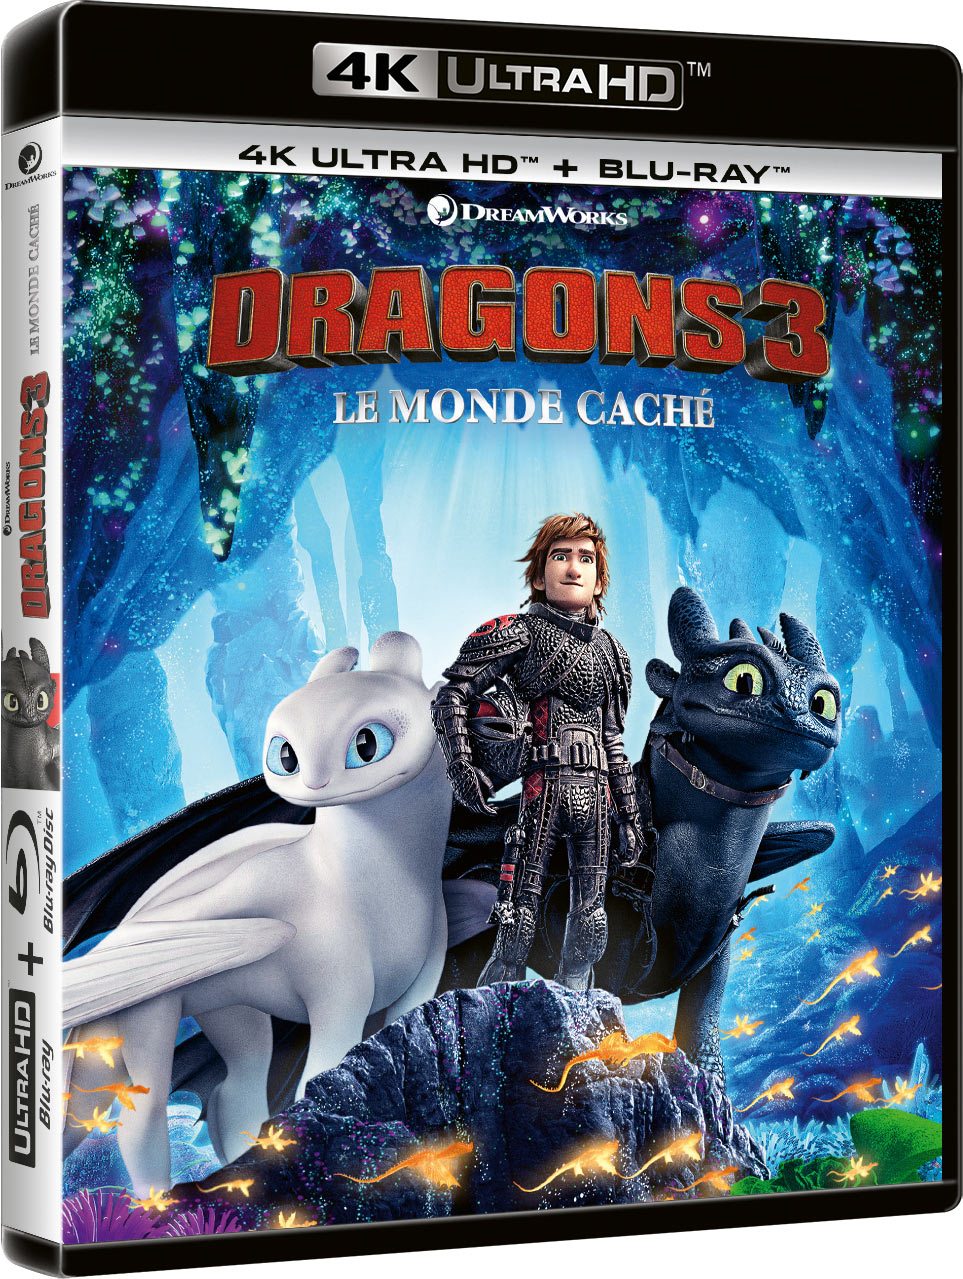 Dragons 3 : Le Monde caché - 4K Ultra HD + Blu-ray + Digital